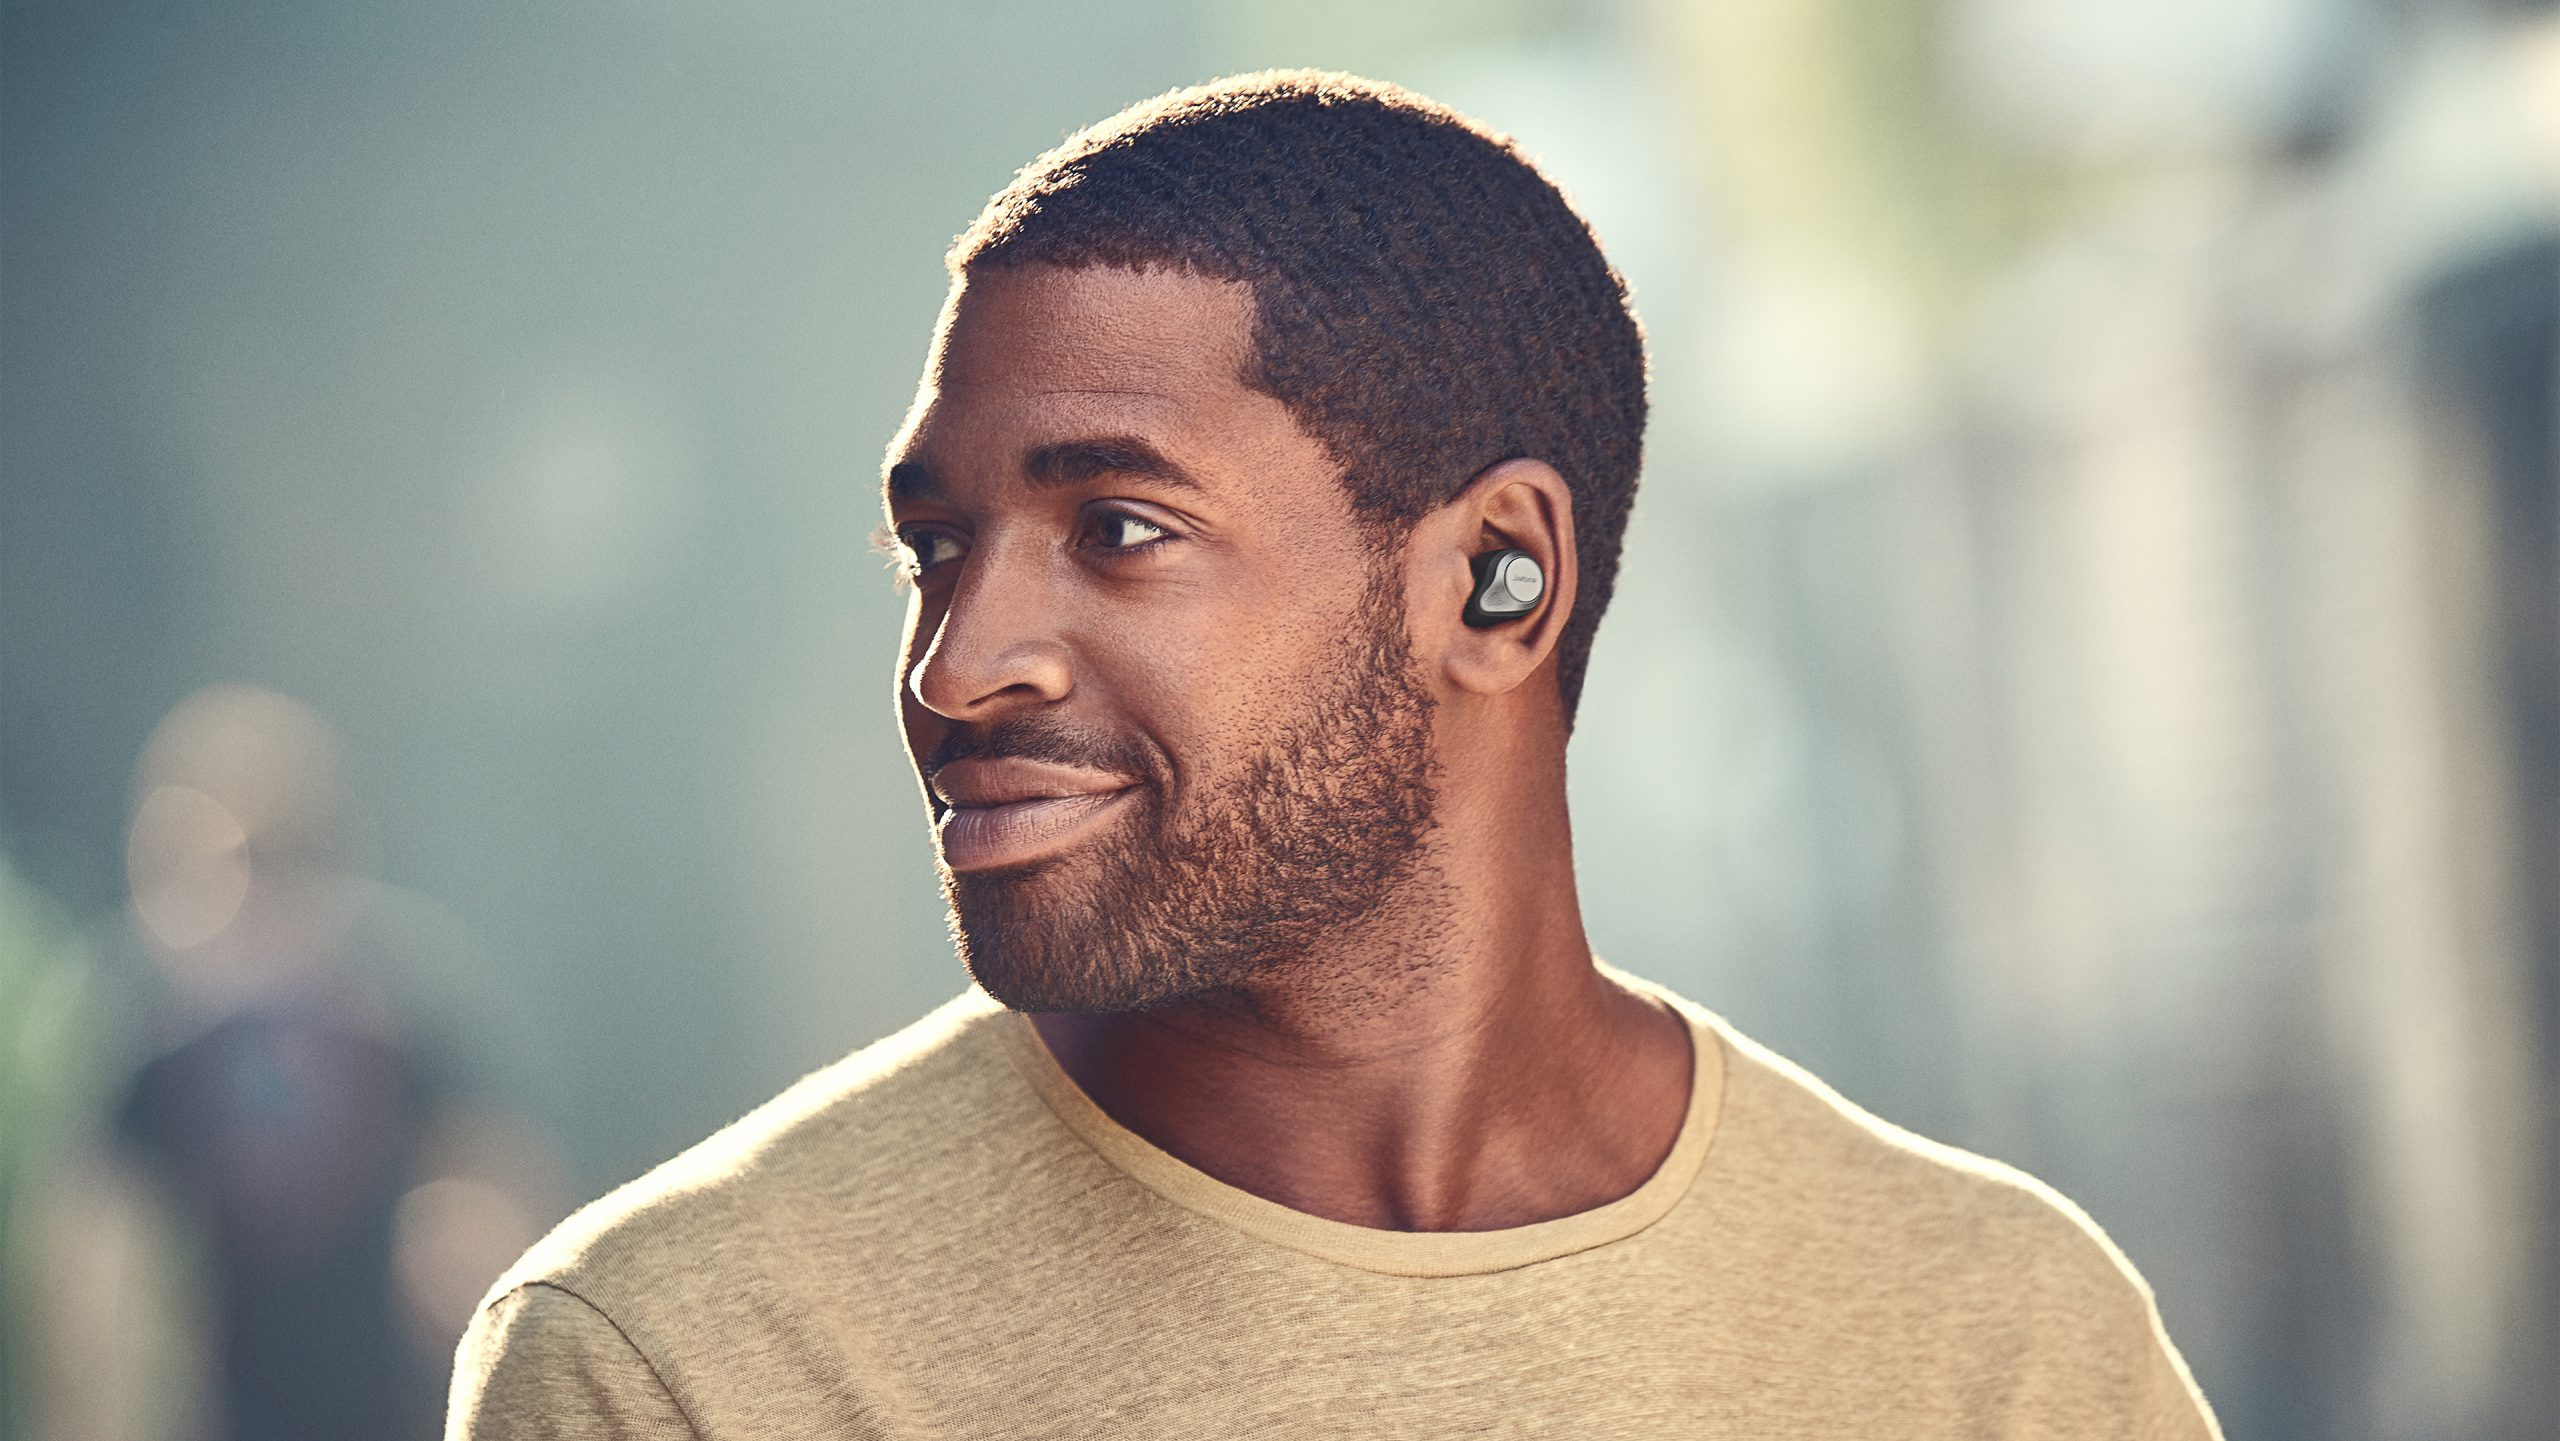 Jabra-Elite-85t-Lifestyle-male-scaled-1